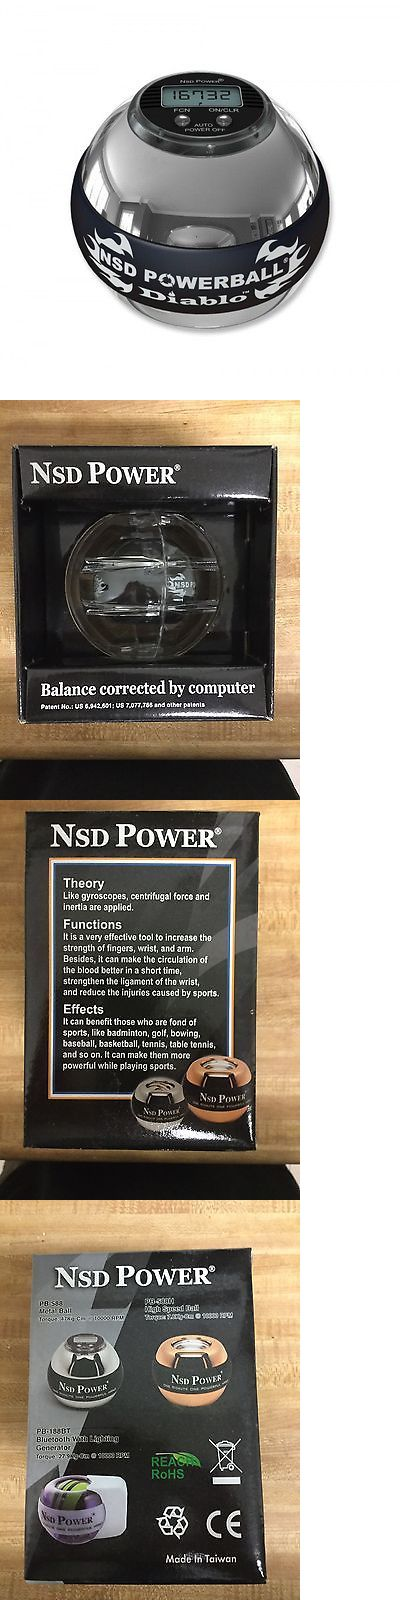 Hand Grippers 137862: Nsd Powerball Metal Diablo Pro 350Hz Silver Brand New In Box -> BUY IT NOW ONLY: $99.99 on eBay!